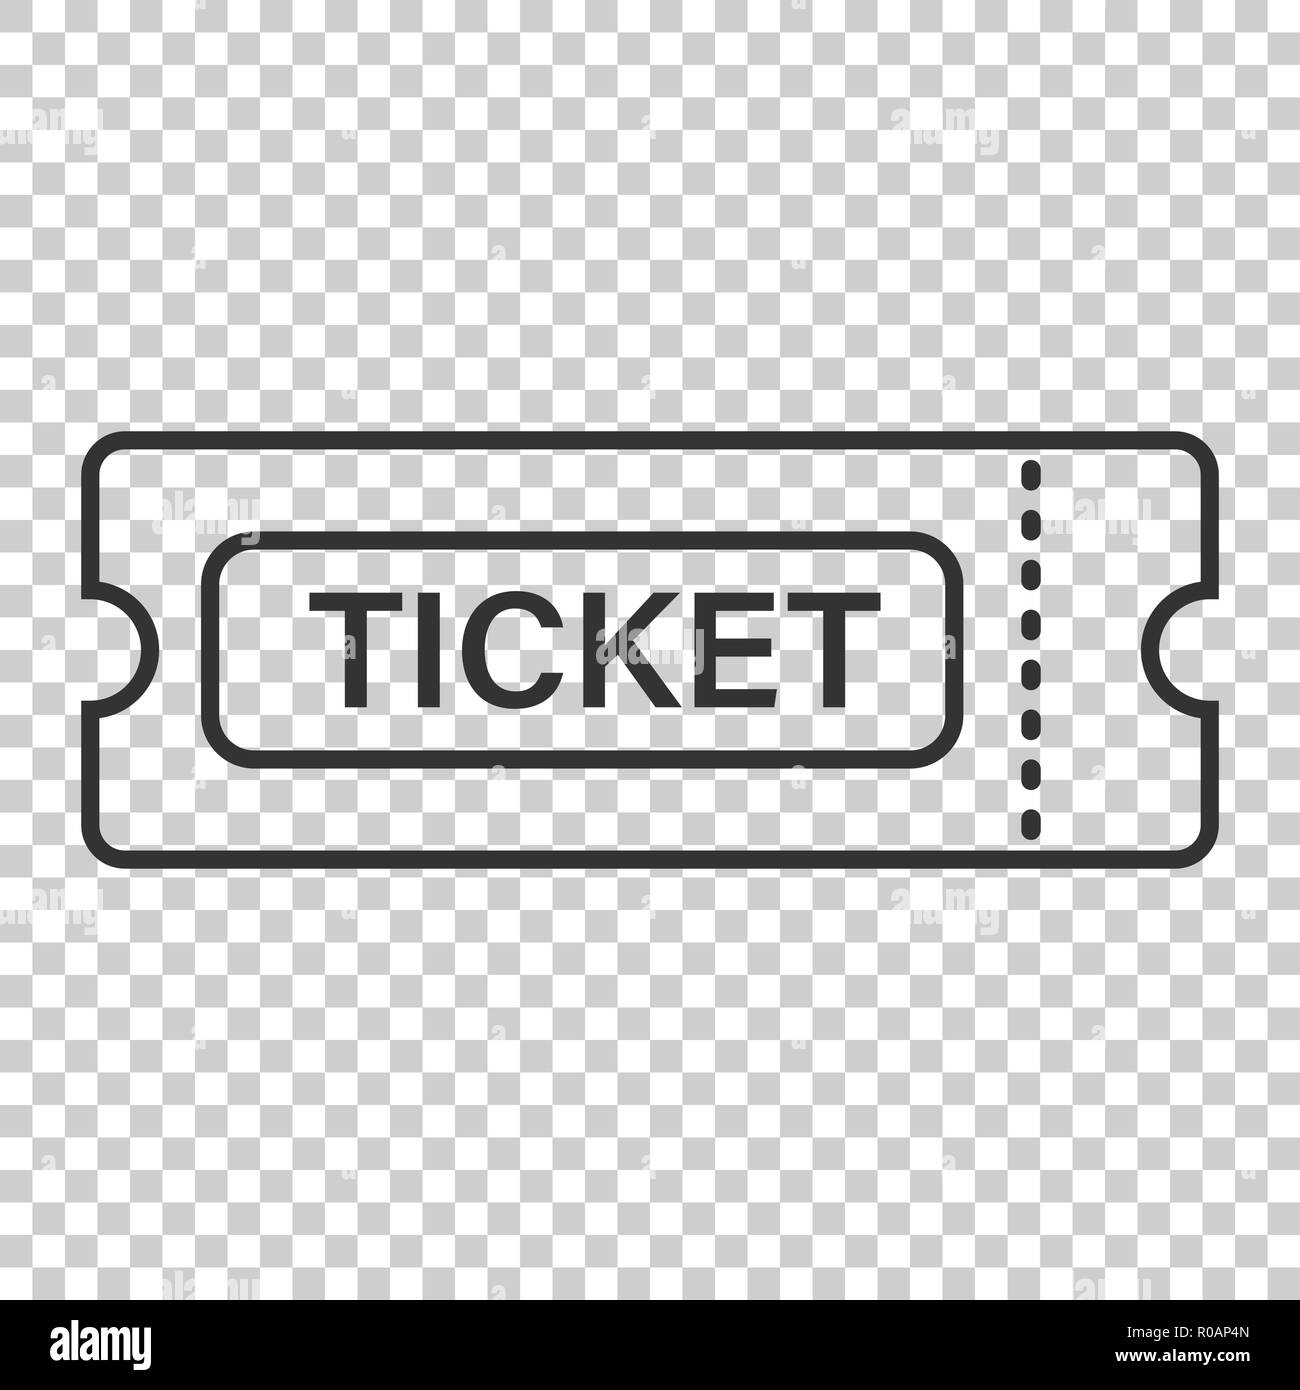 cinema ticket icon in flat style admit one coupon entrance vector